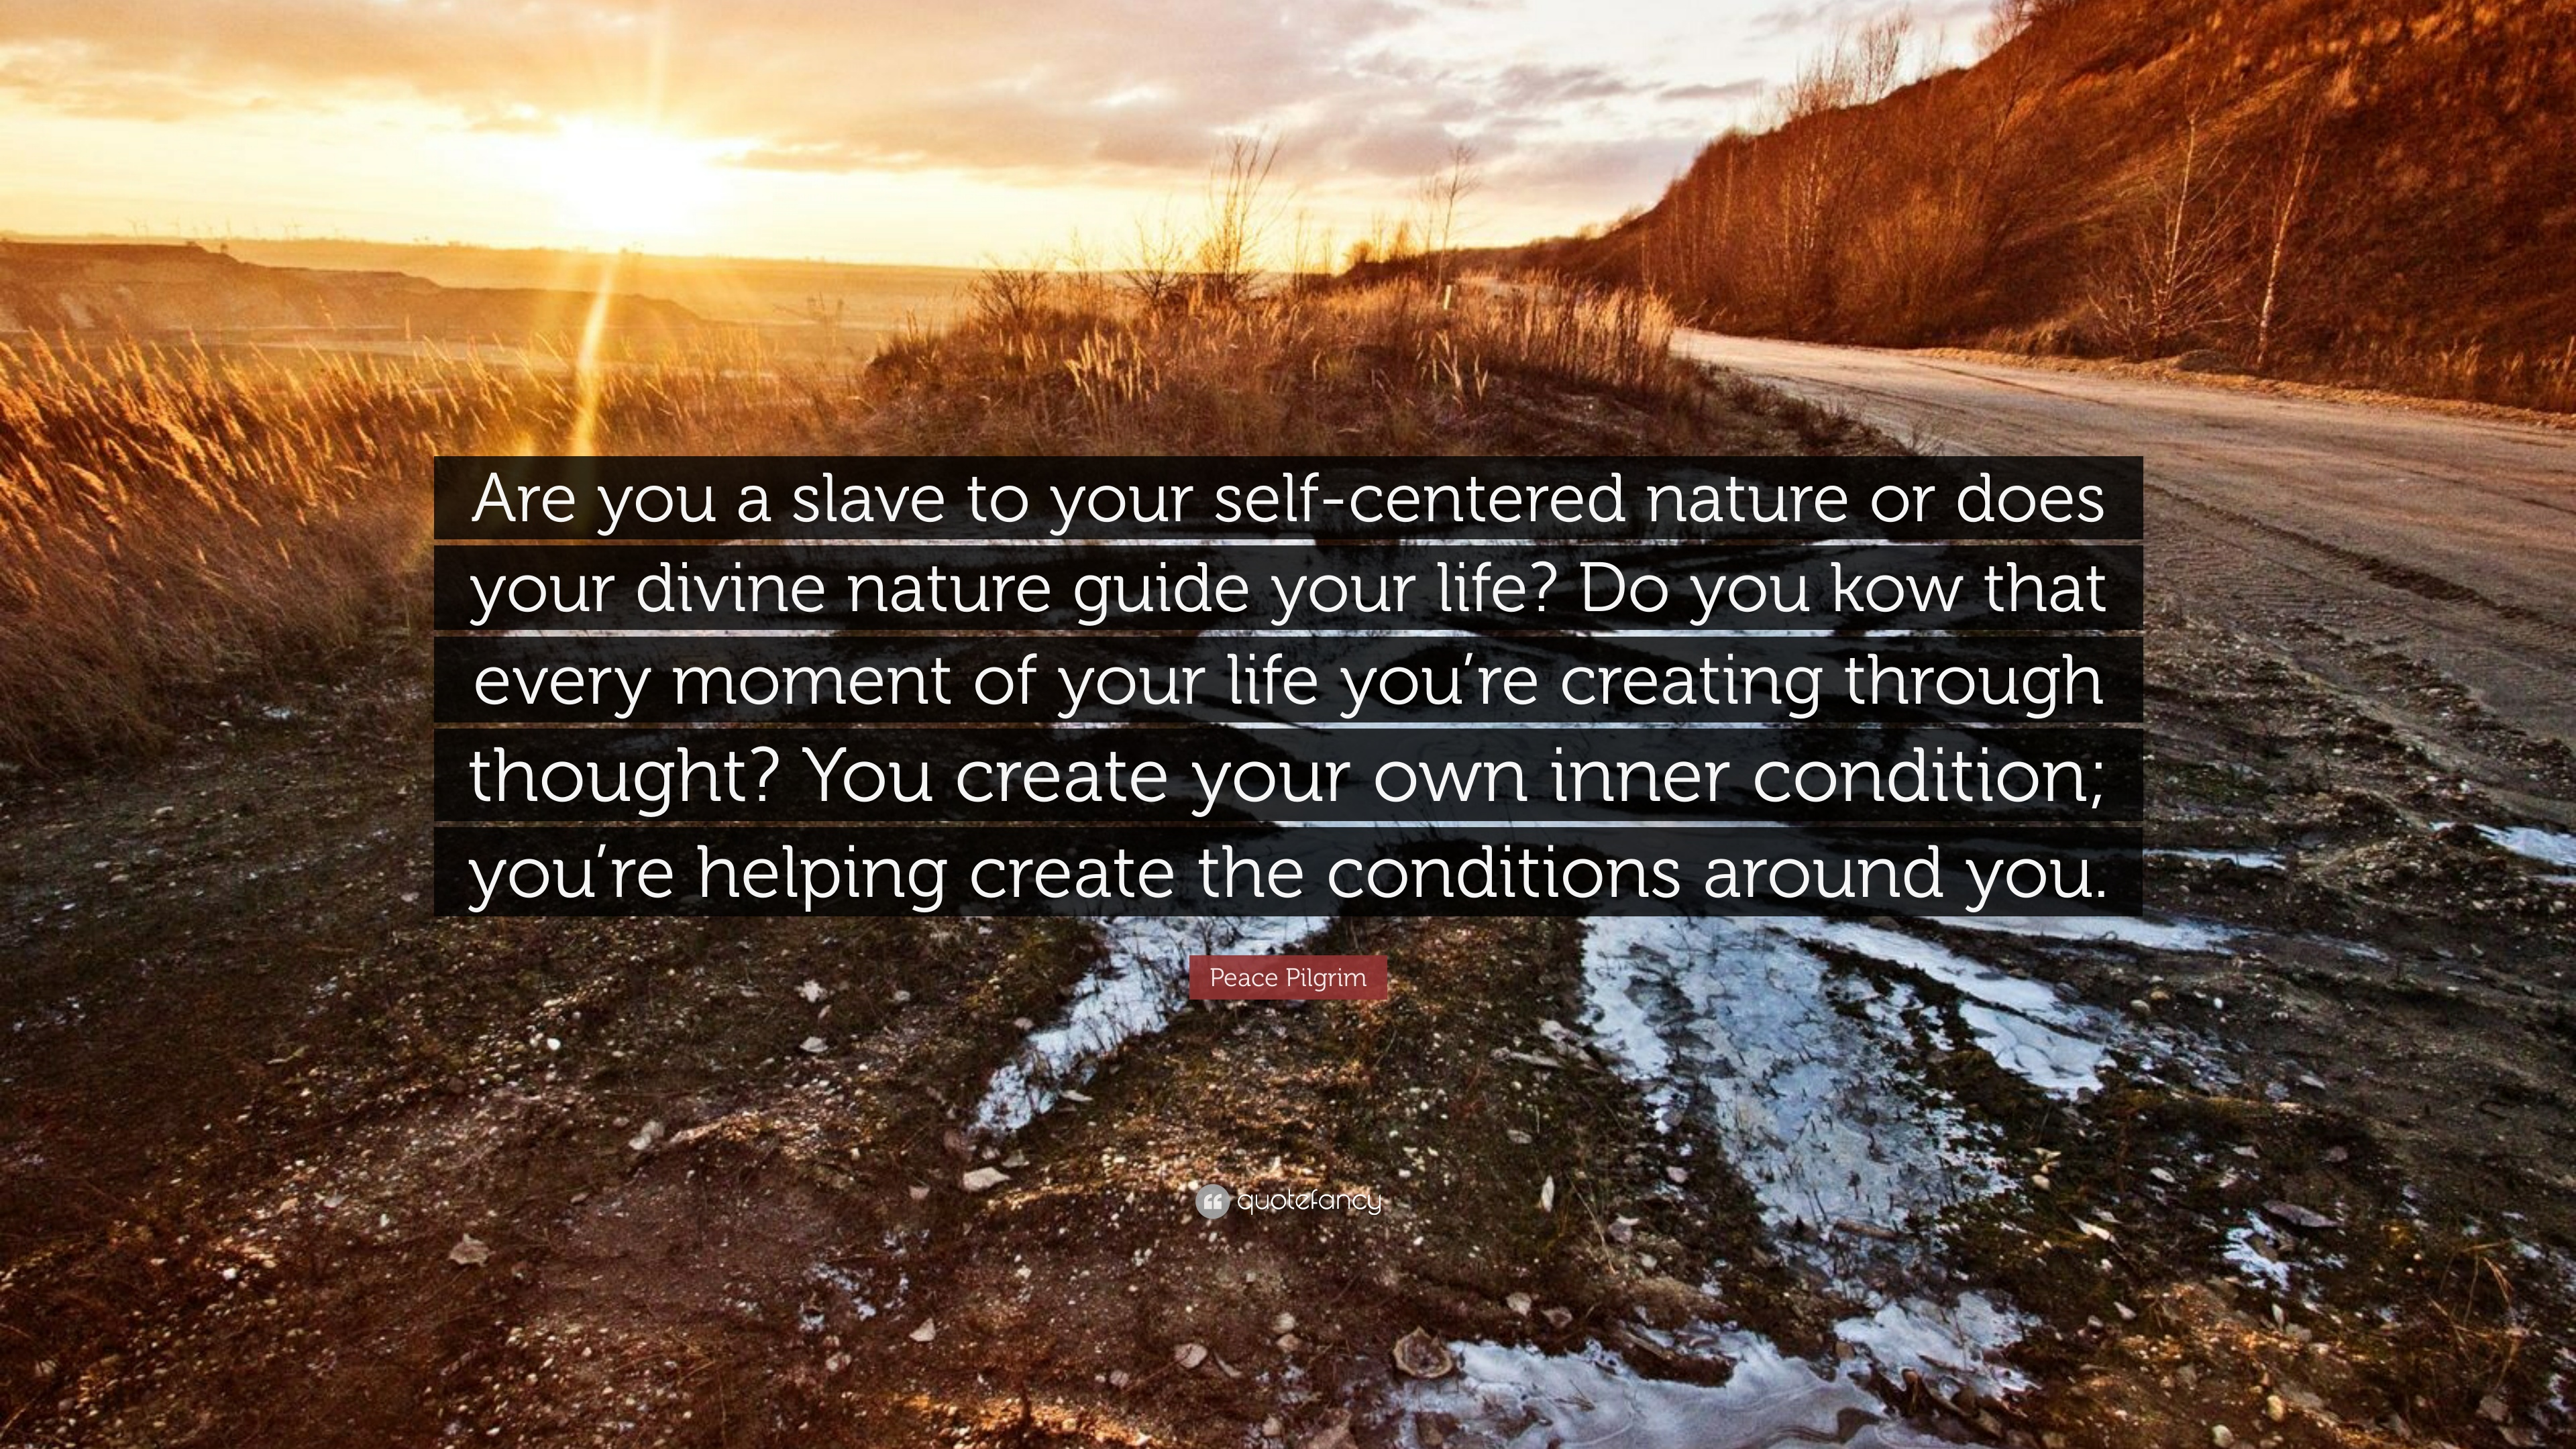 Peace pilgrim quote are you a slave to your self centered nature peace pilgrim quote are you a slave to your self centered nature or sciox Gallery